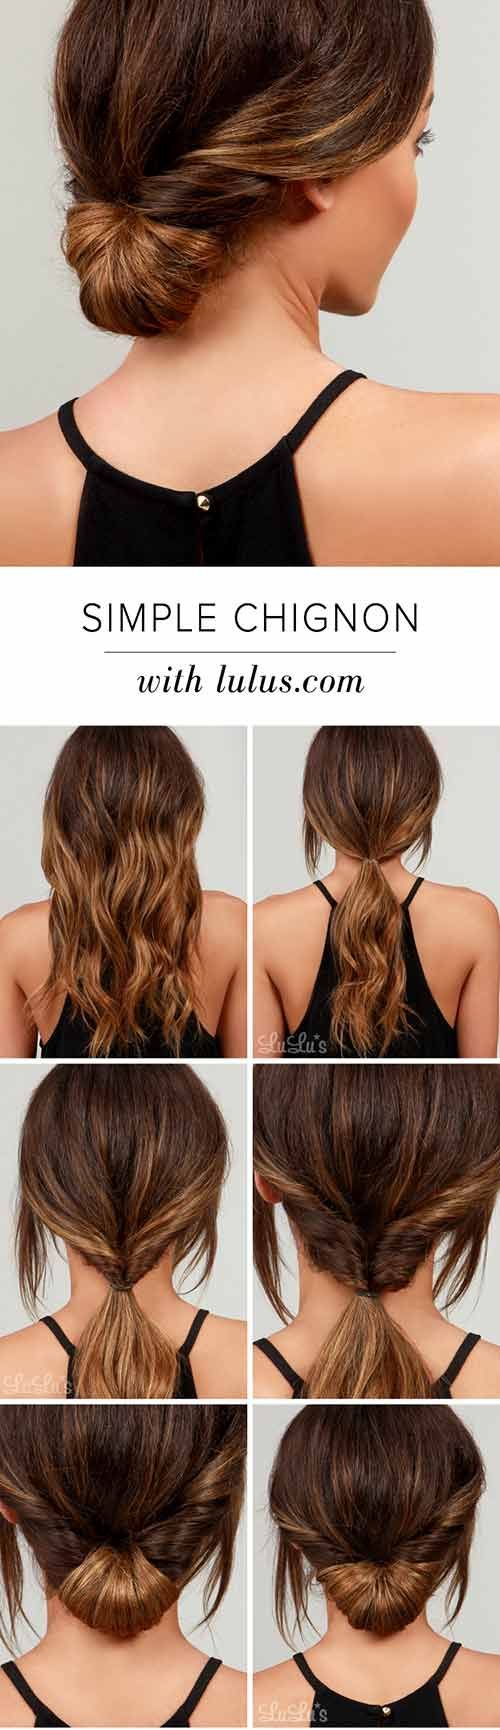 12 Great Hairstyles For Girls Longhair Hairstyles